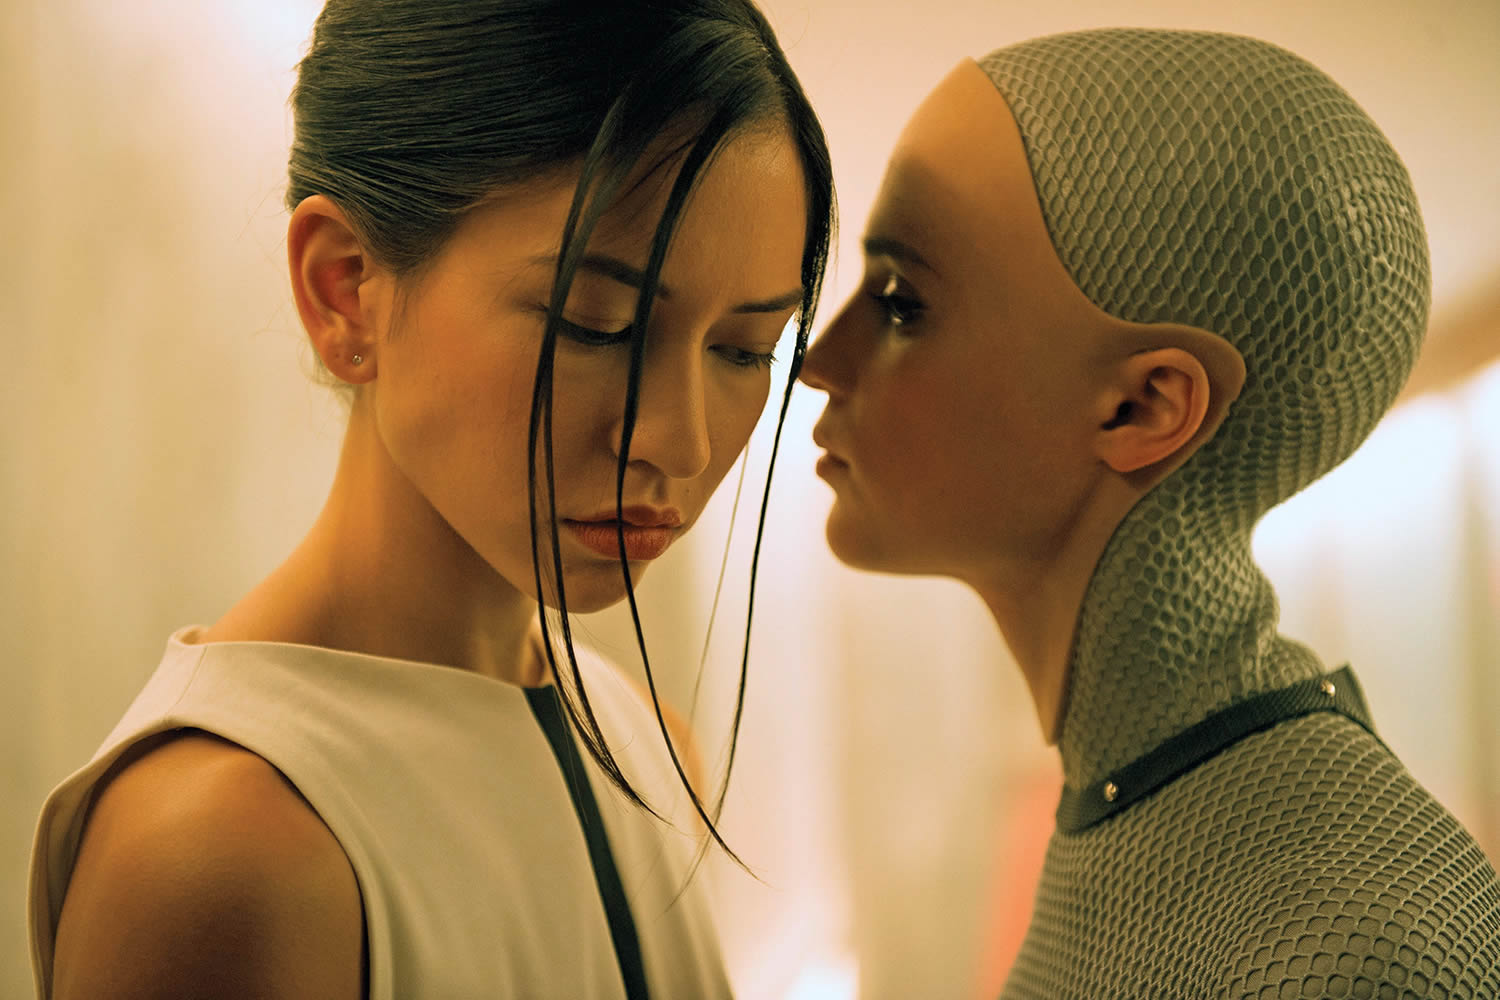 robot girl in ex machina by alex garland